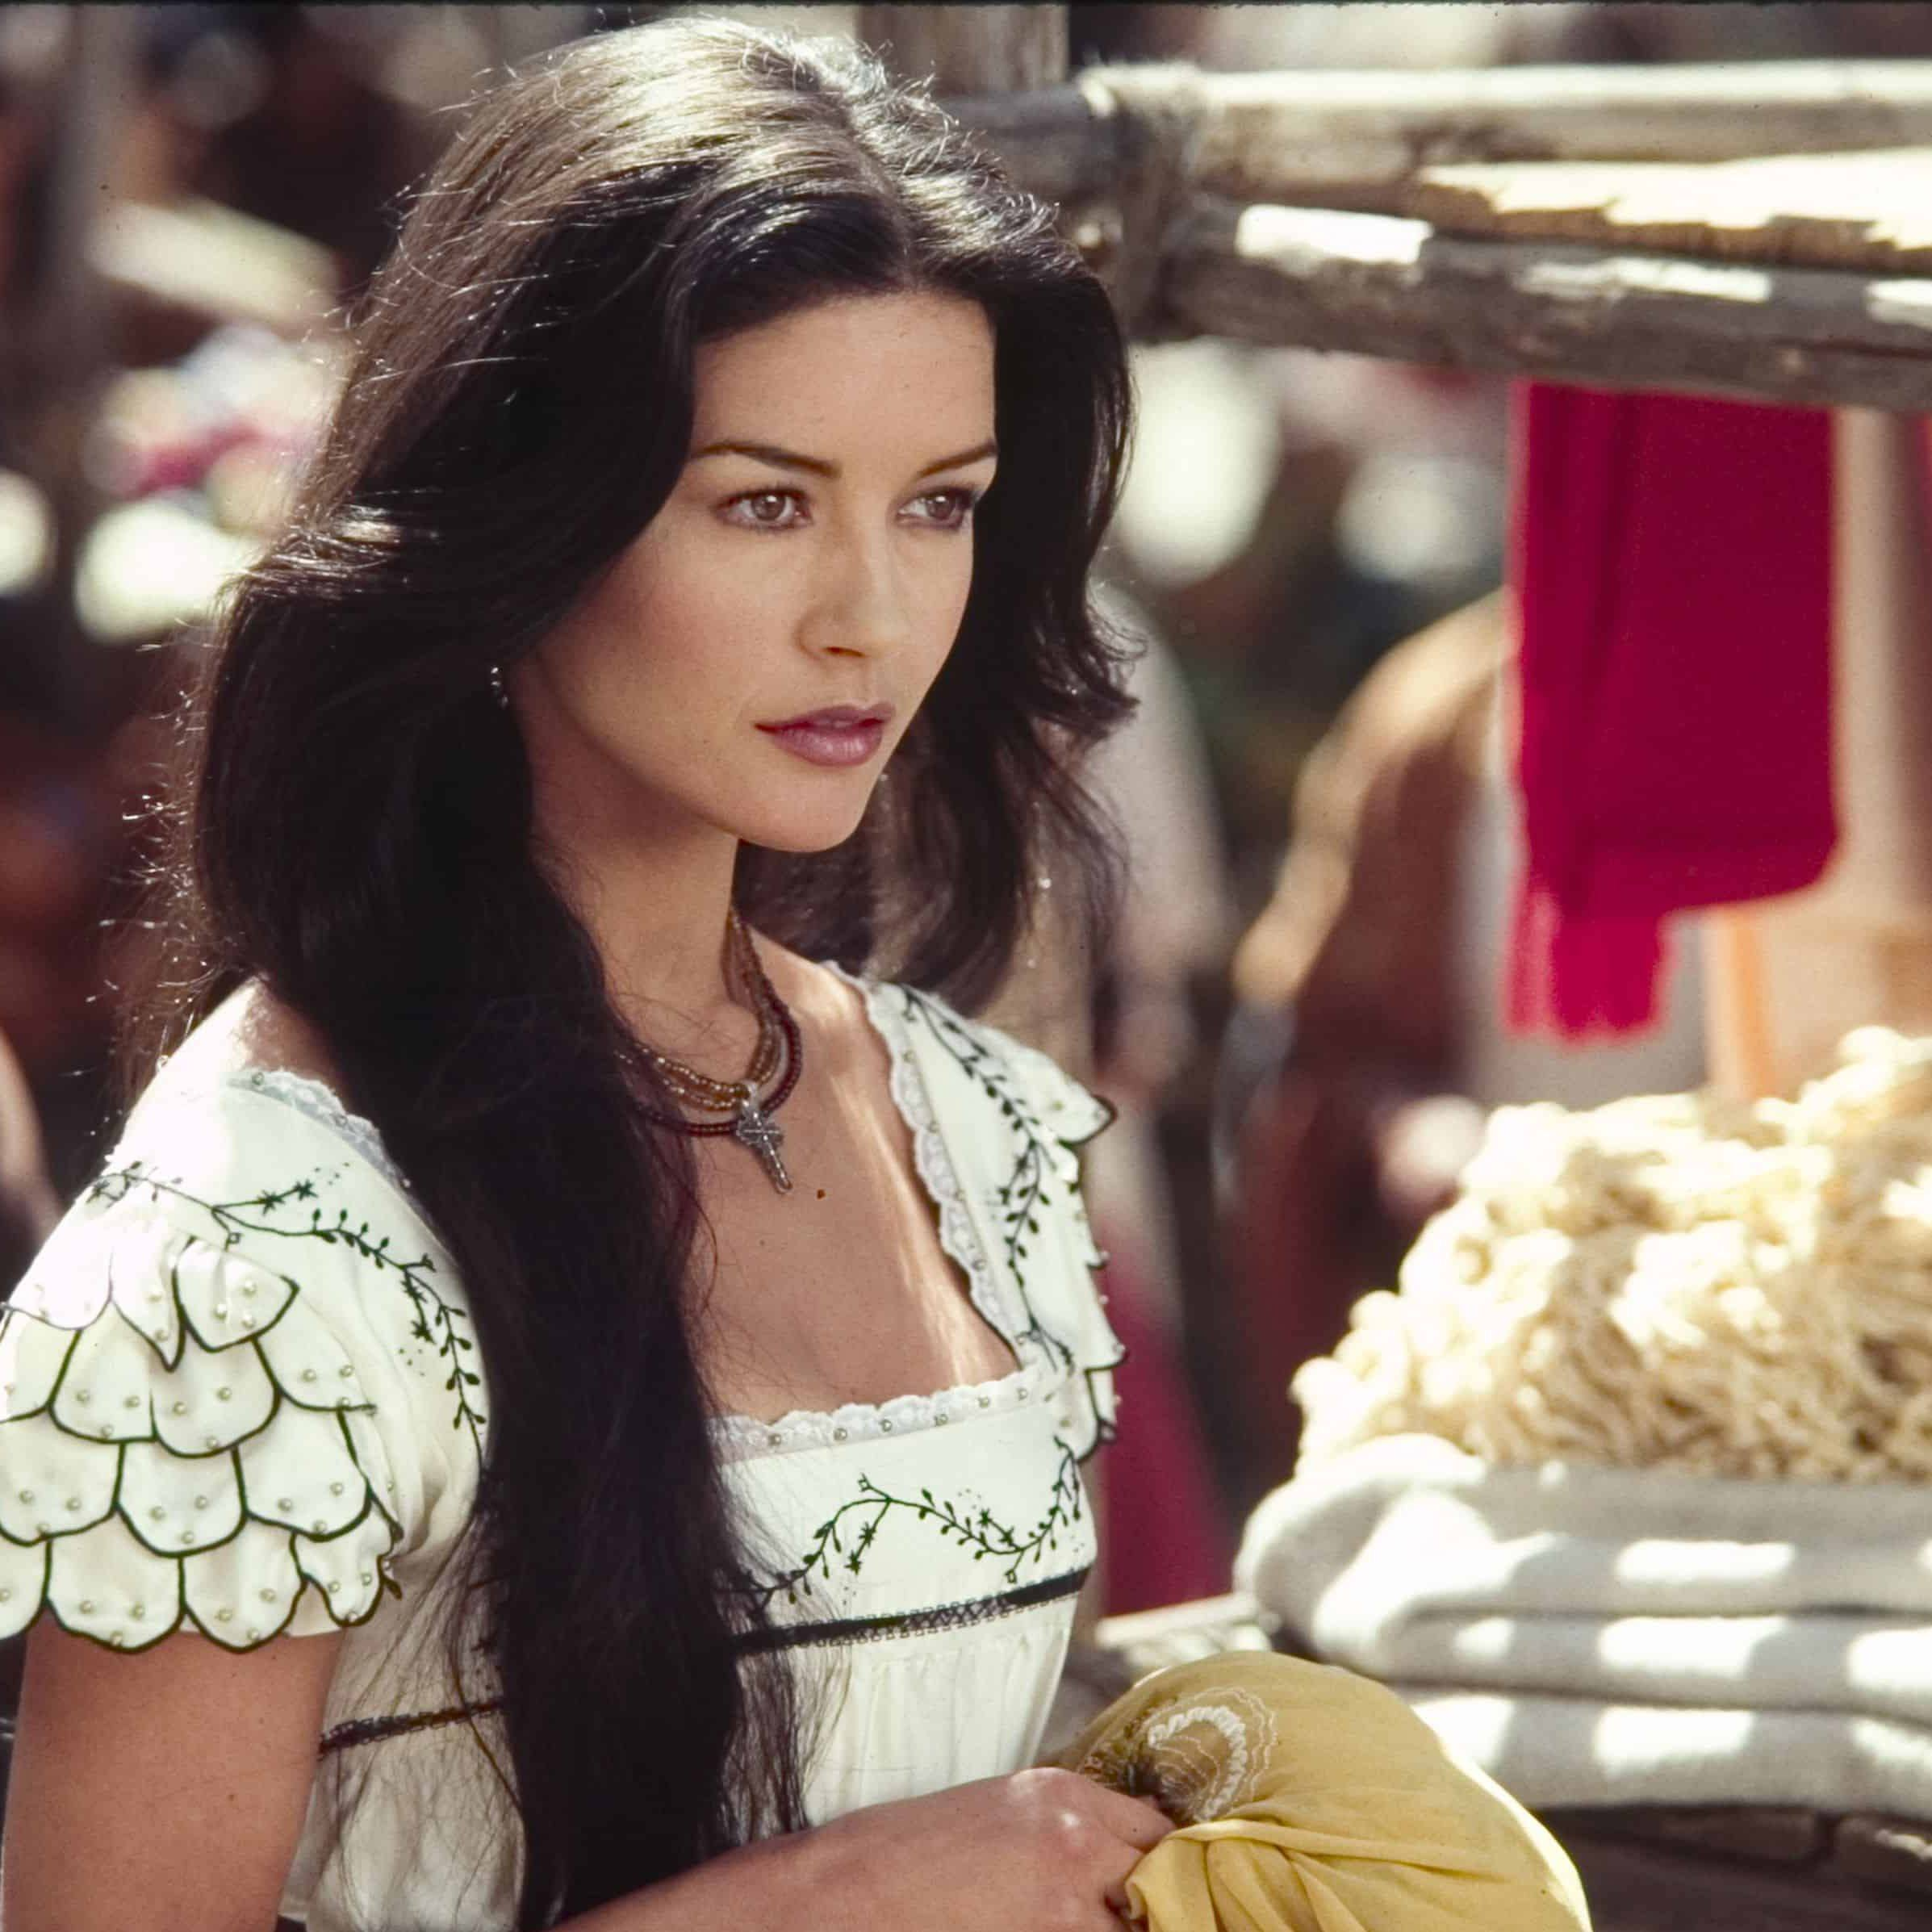 cz 3 20 Things You Never Knew About Catherine Zeta-Jones